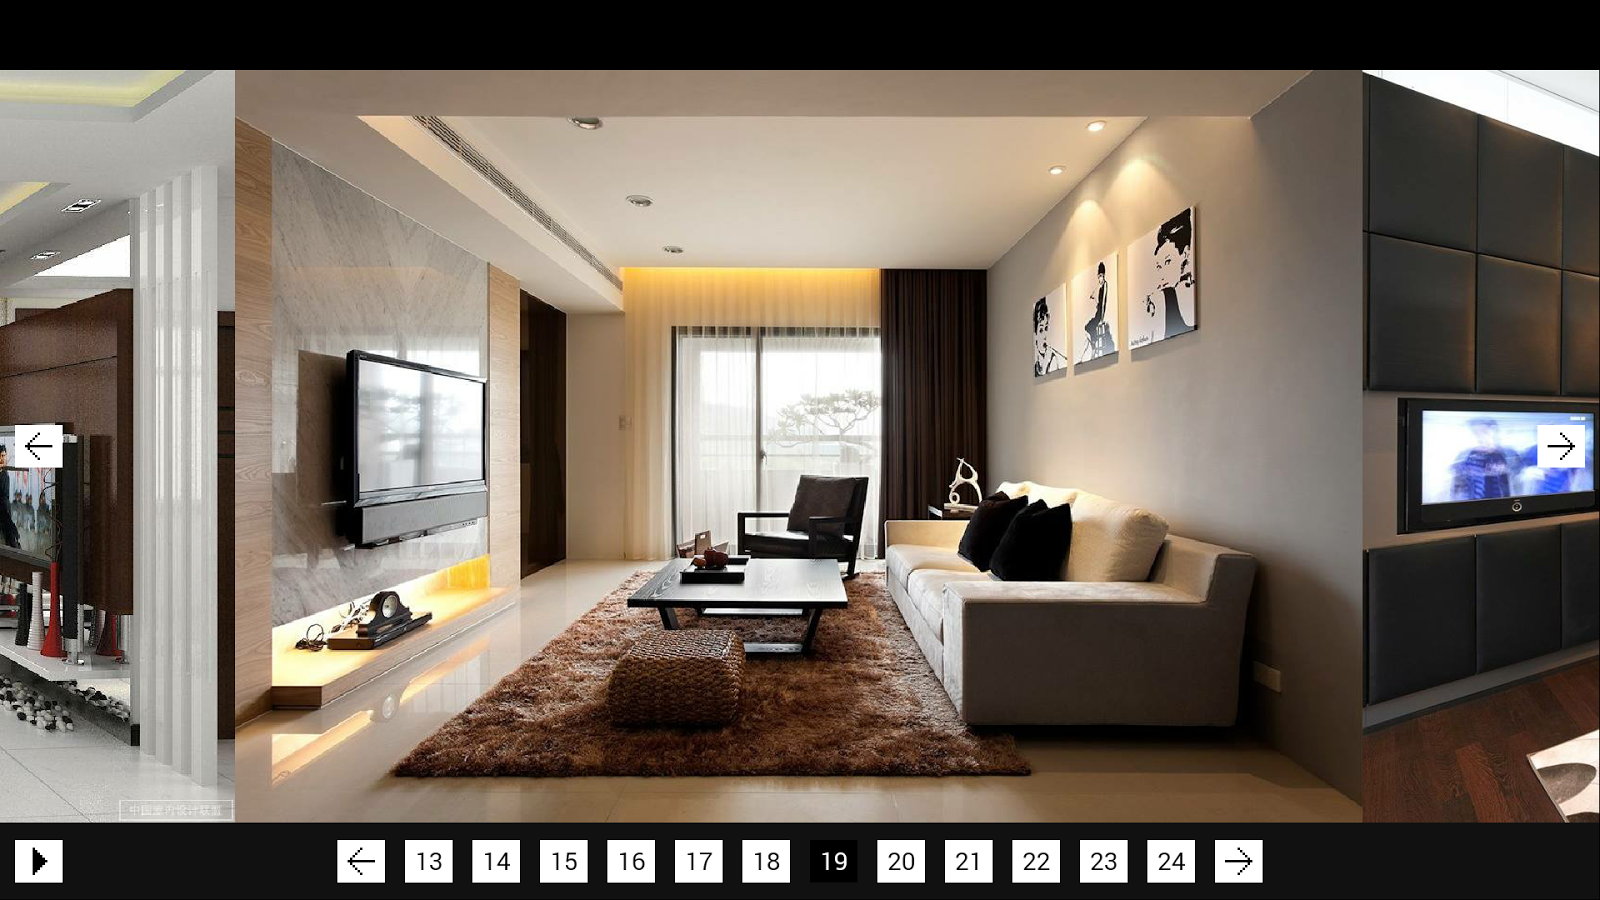 Home interior design android apps on google play for Indoor home design picture